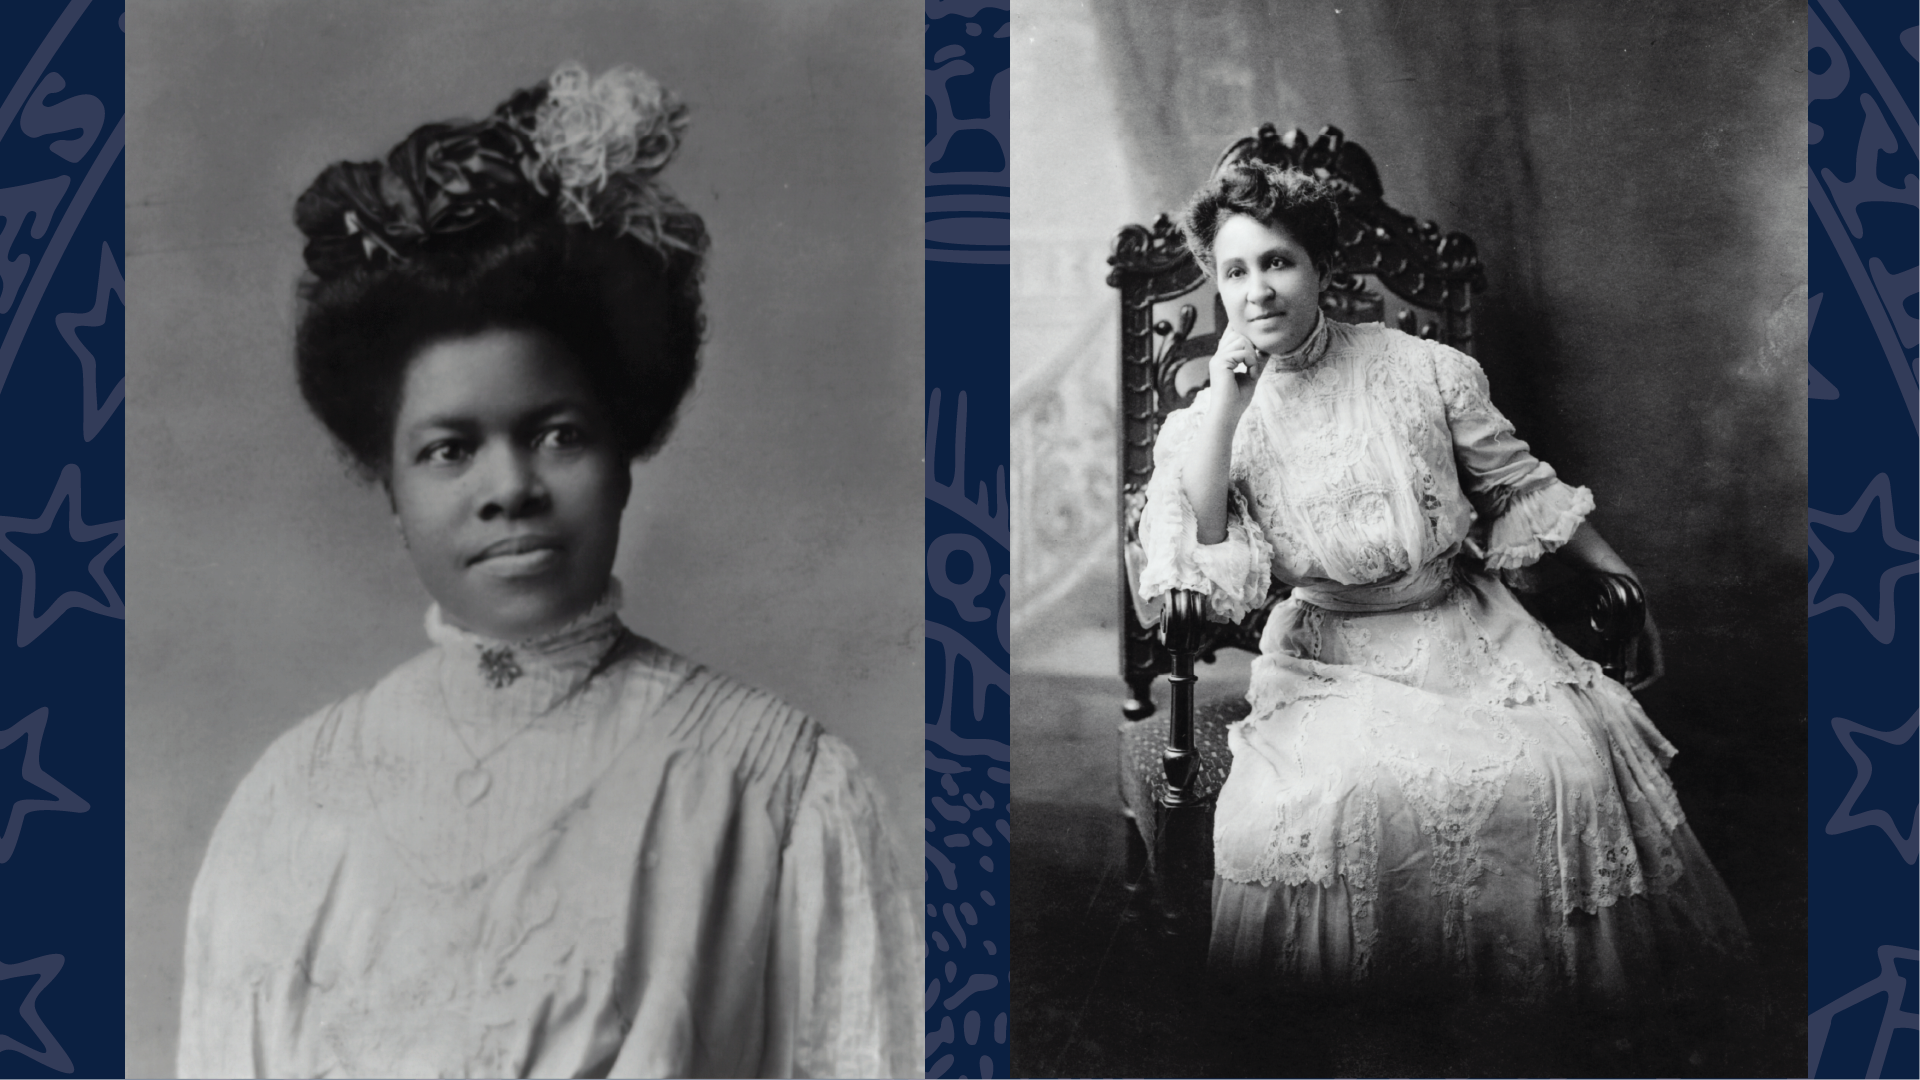 On left Nannie Helen Burroughs, on right Mary Church Terrell. Library of Congress Prints & Photographs Division